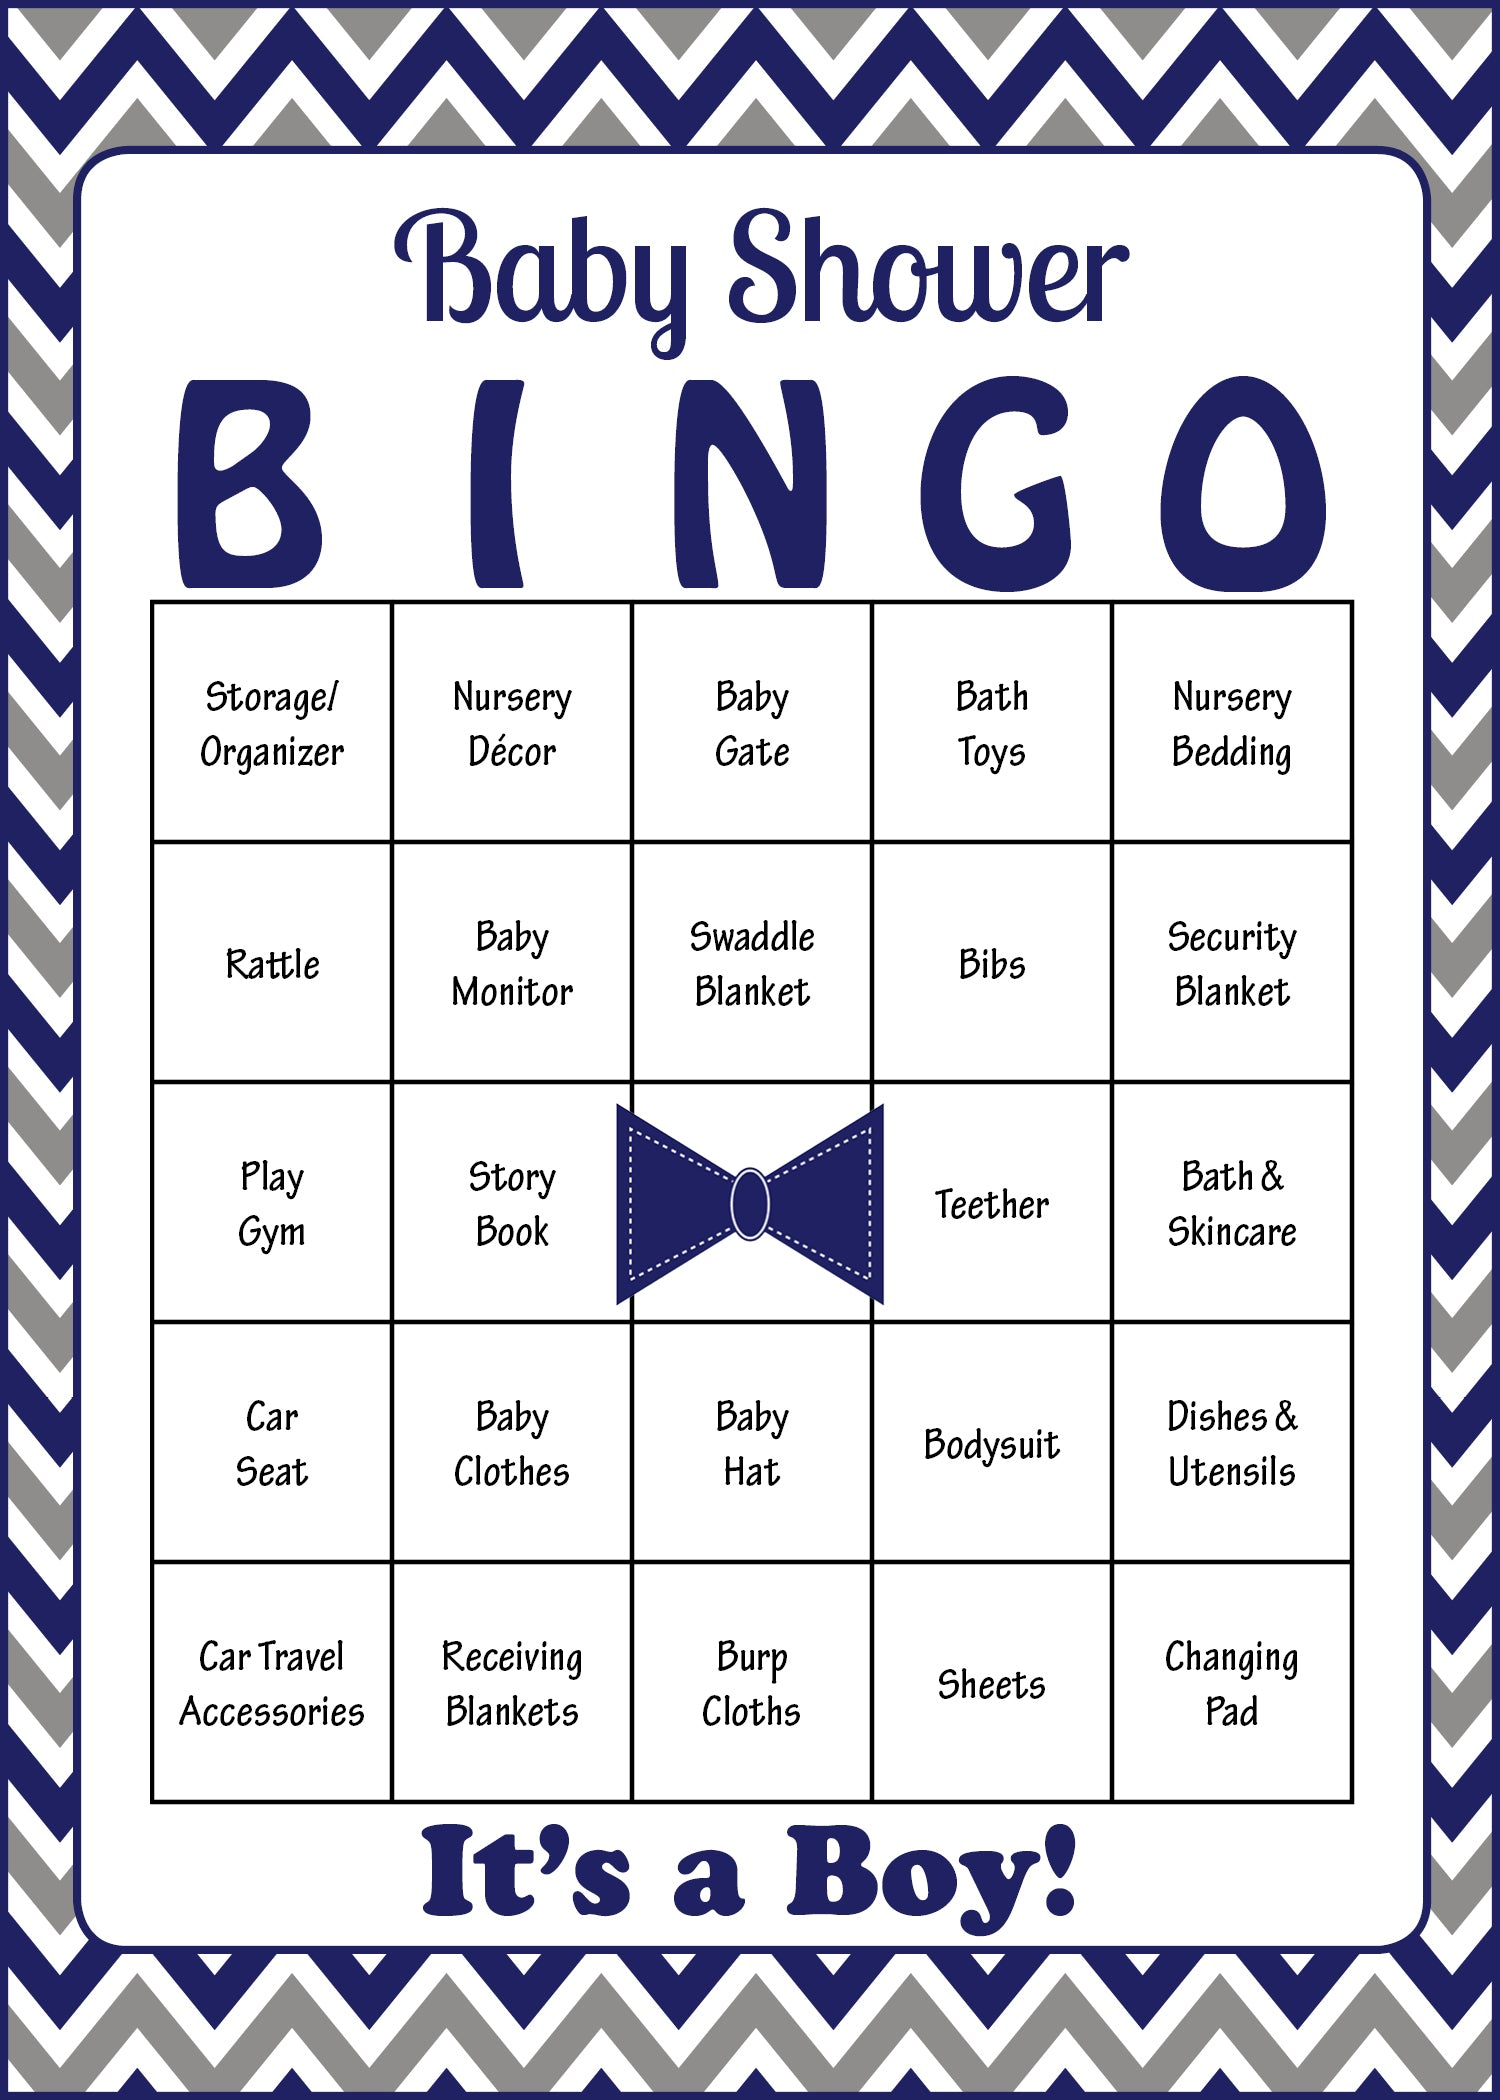 Little man baby shower game download for boy baby bingo little man baby bingo cards printable download prefilled baby shower game for boy navy gray chevrons b1006 solutioingenieria Choice Image